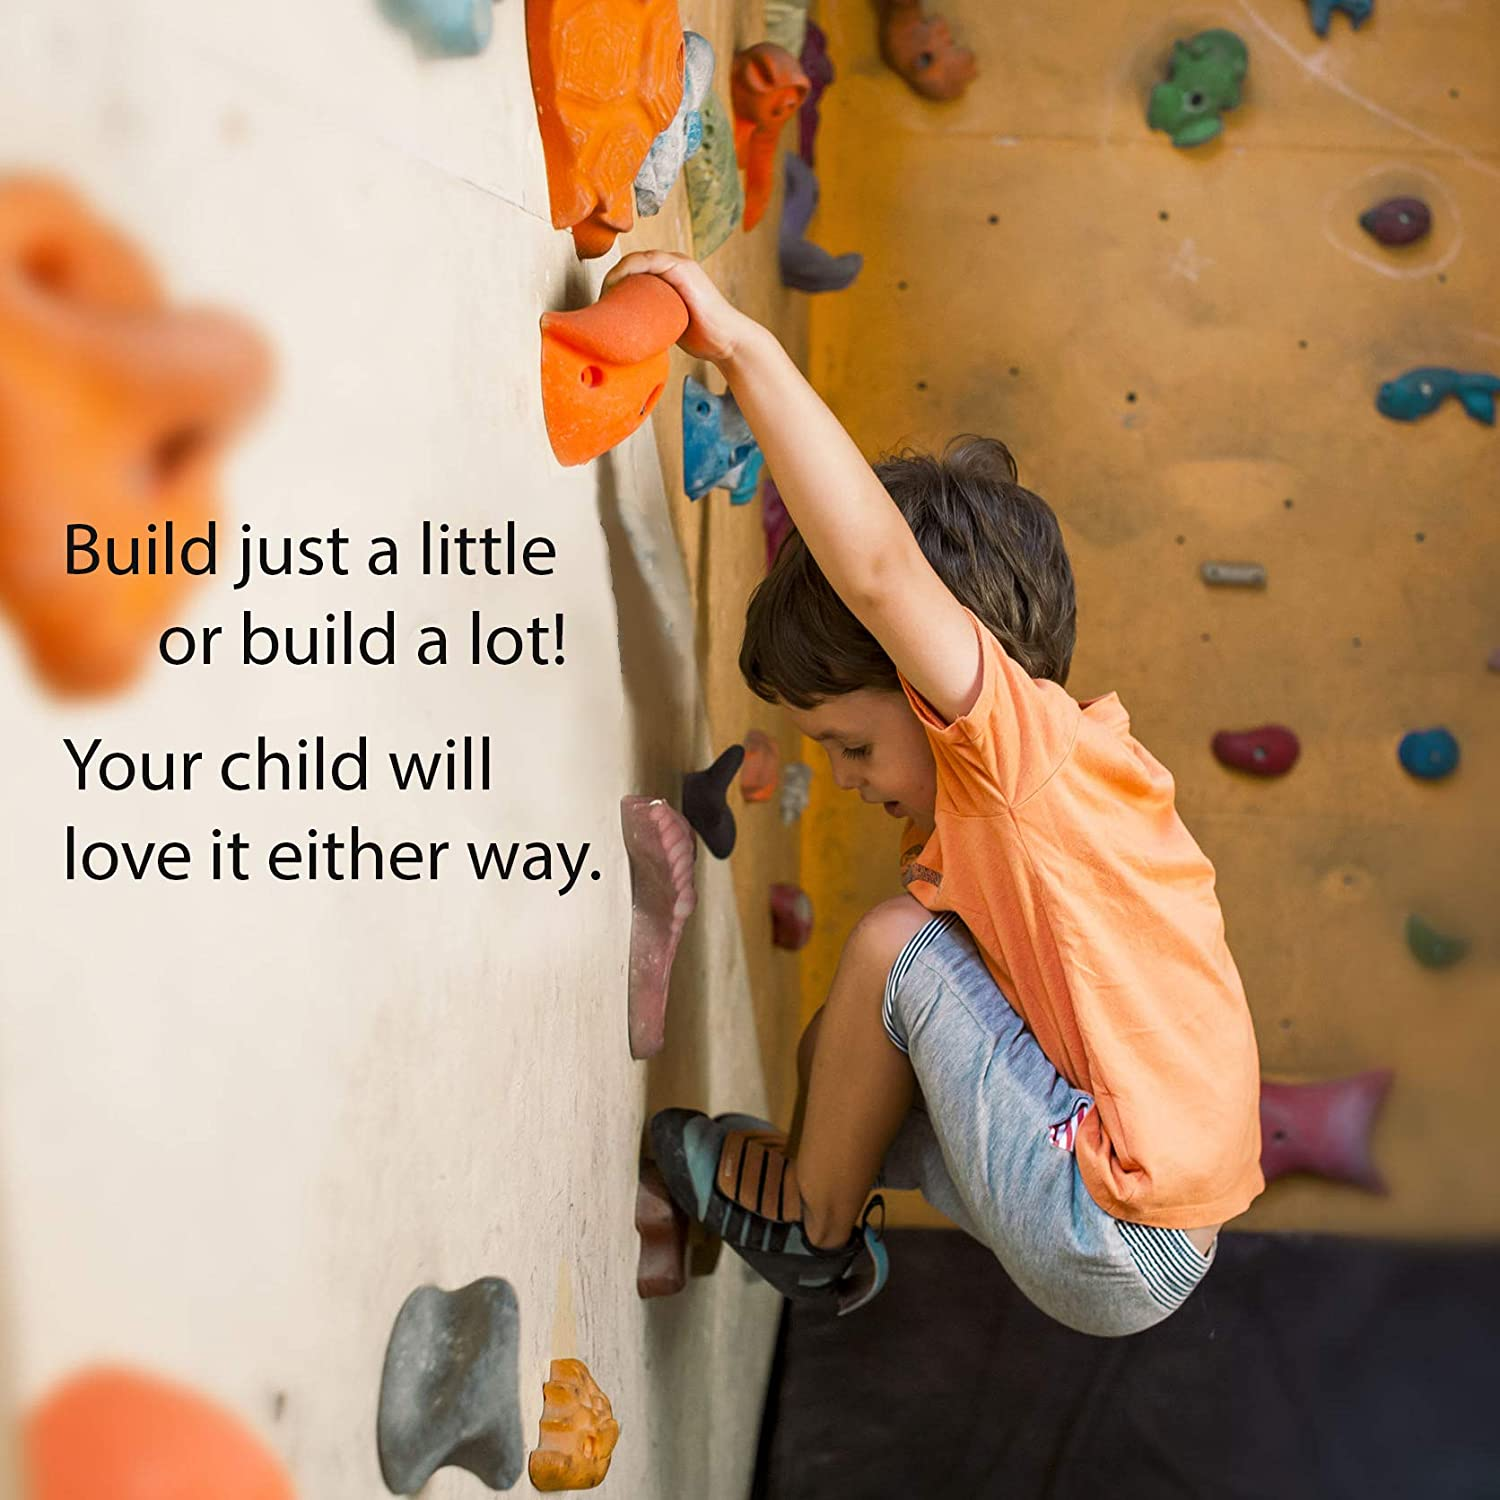 Rock Wall Holds for Rock Climbing for Kids Outdoor and Rock Climbing Wall Rock Climbing Indoor Rock Climbing Holds for Kids 27 Set Climbing Wall Holds for Kids Outdoor